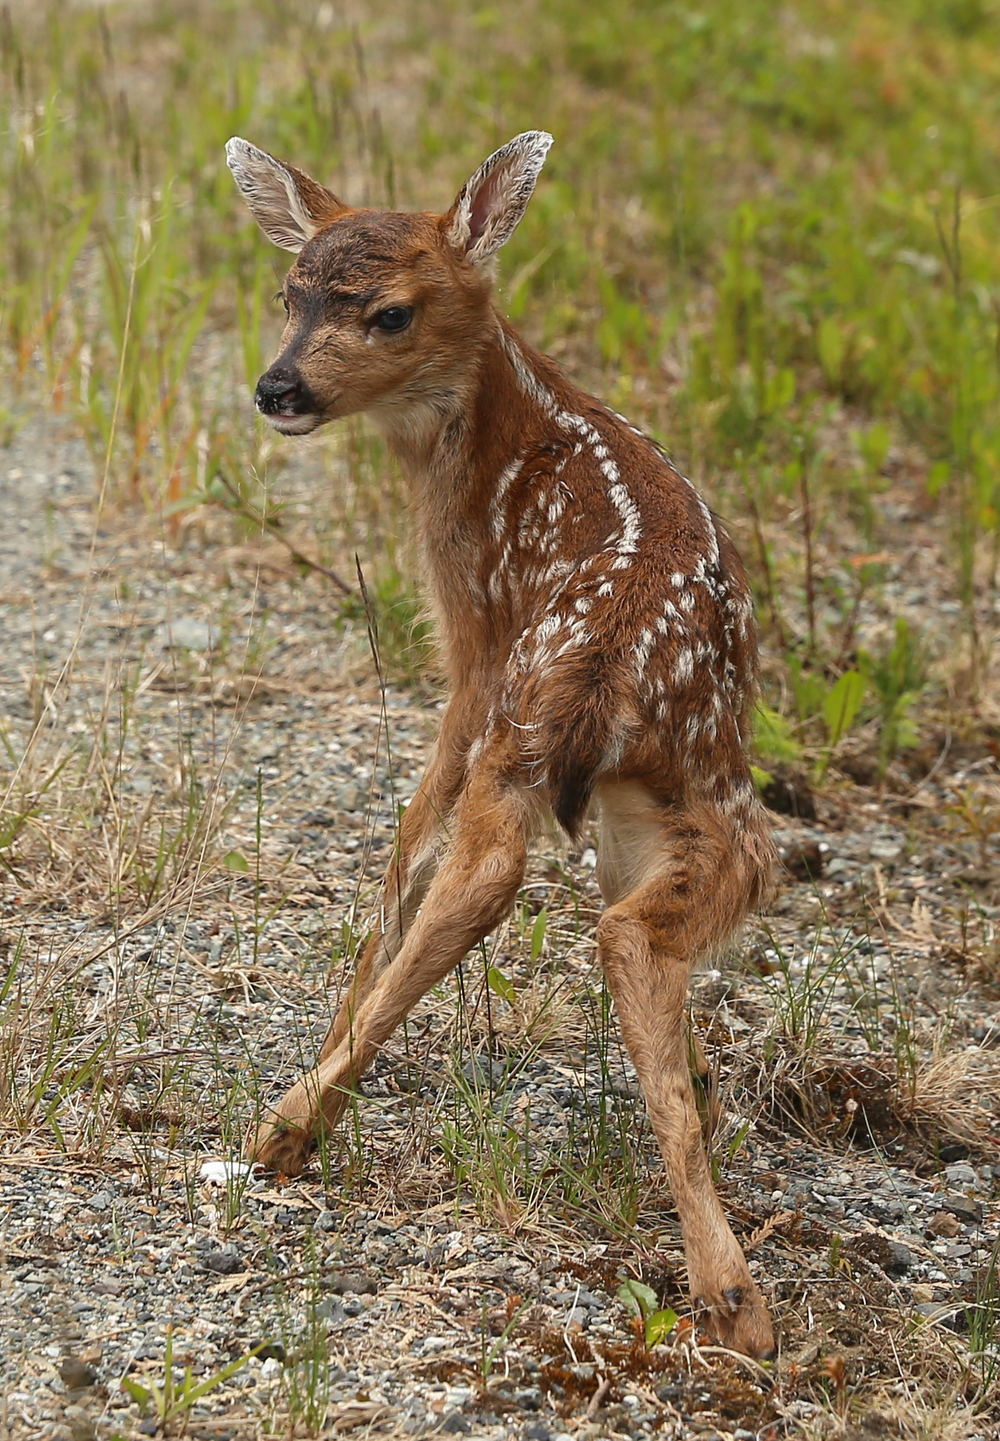 Wobbly adorable cute Fawn Sitka Blacktail Southeast Alaska blue eyes